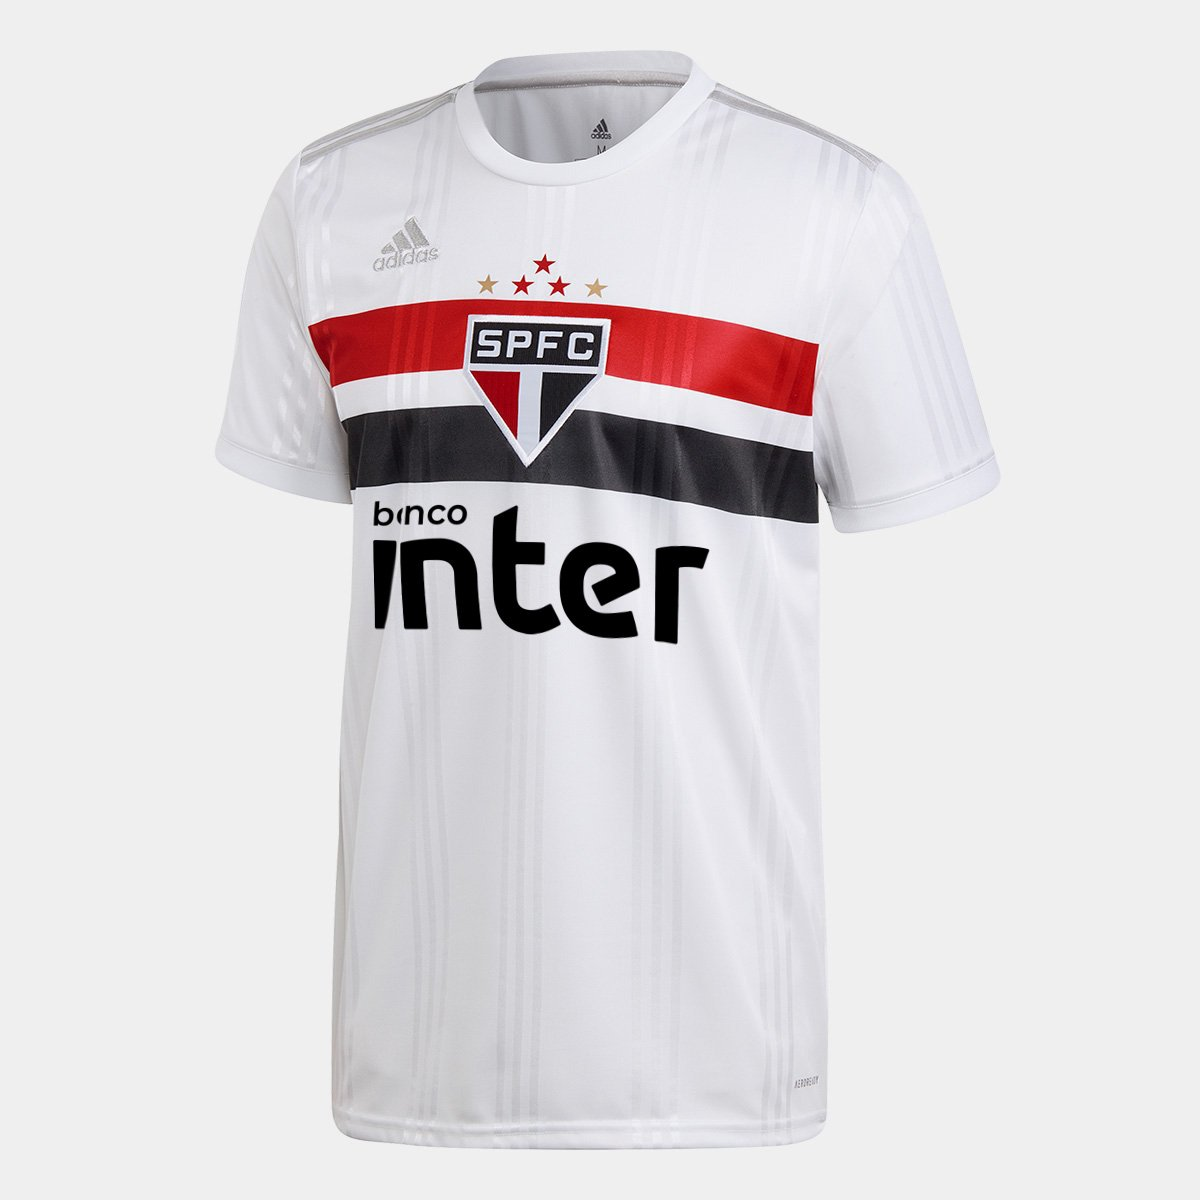 https://i0.wp.com/footballfashion.org/wordpress/wp-content/uploads/2020/03/sao-paulo-2020-2021-adidas-home-kit-2.jpg?ssl=1